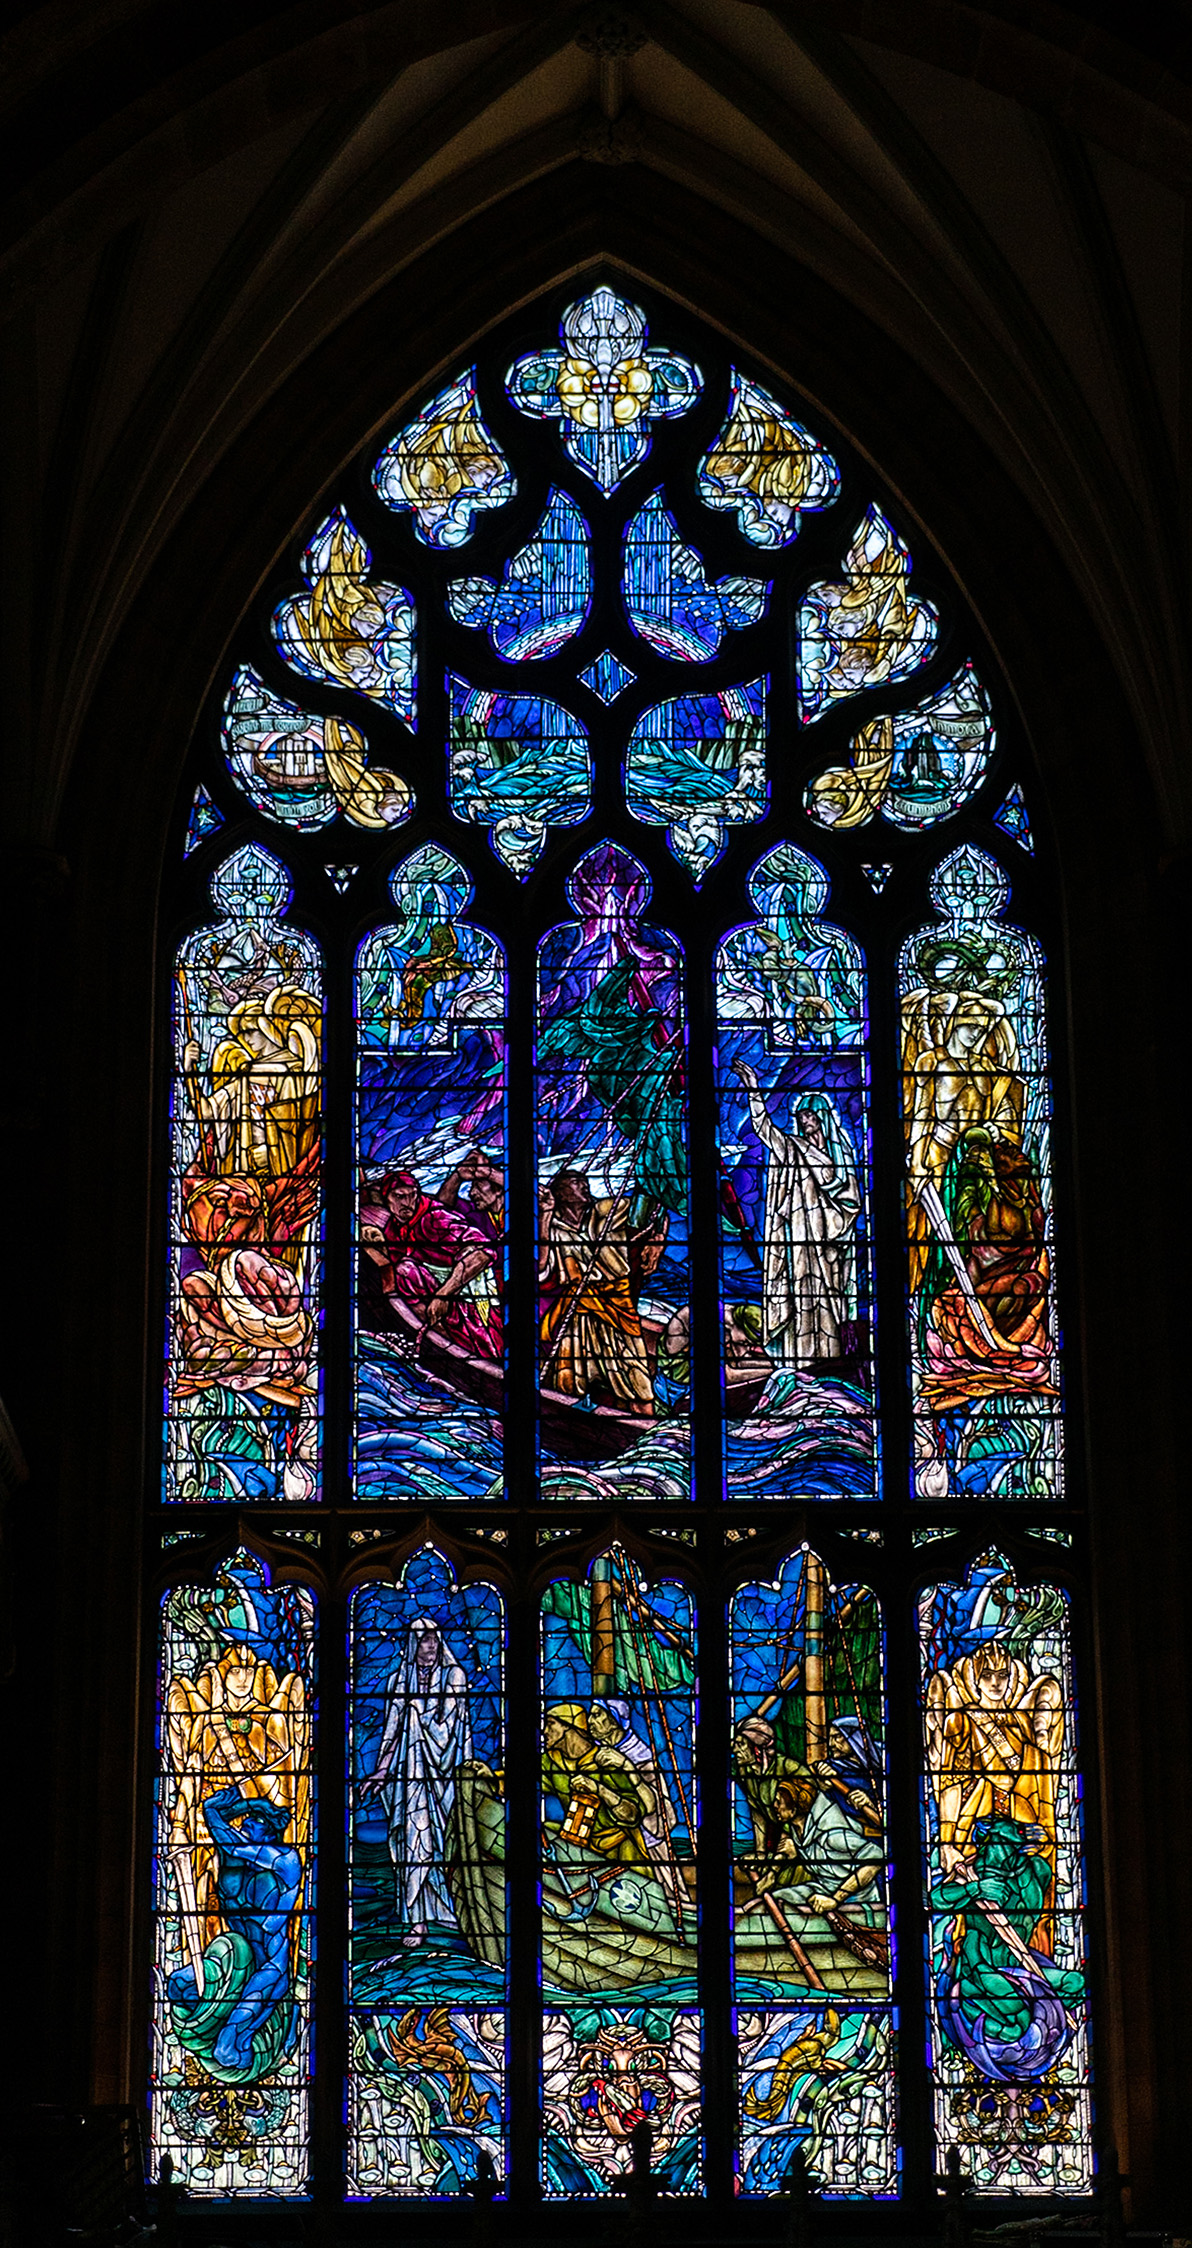 #stgiles, #edinburgh, #scotland, #church, #cathedral, #art, #stainedglass, #scripture, #window